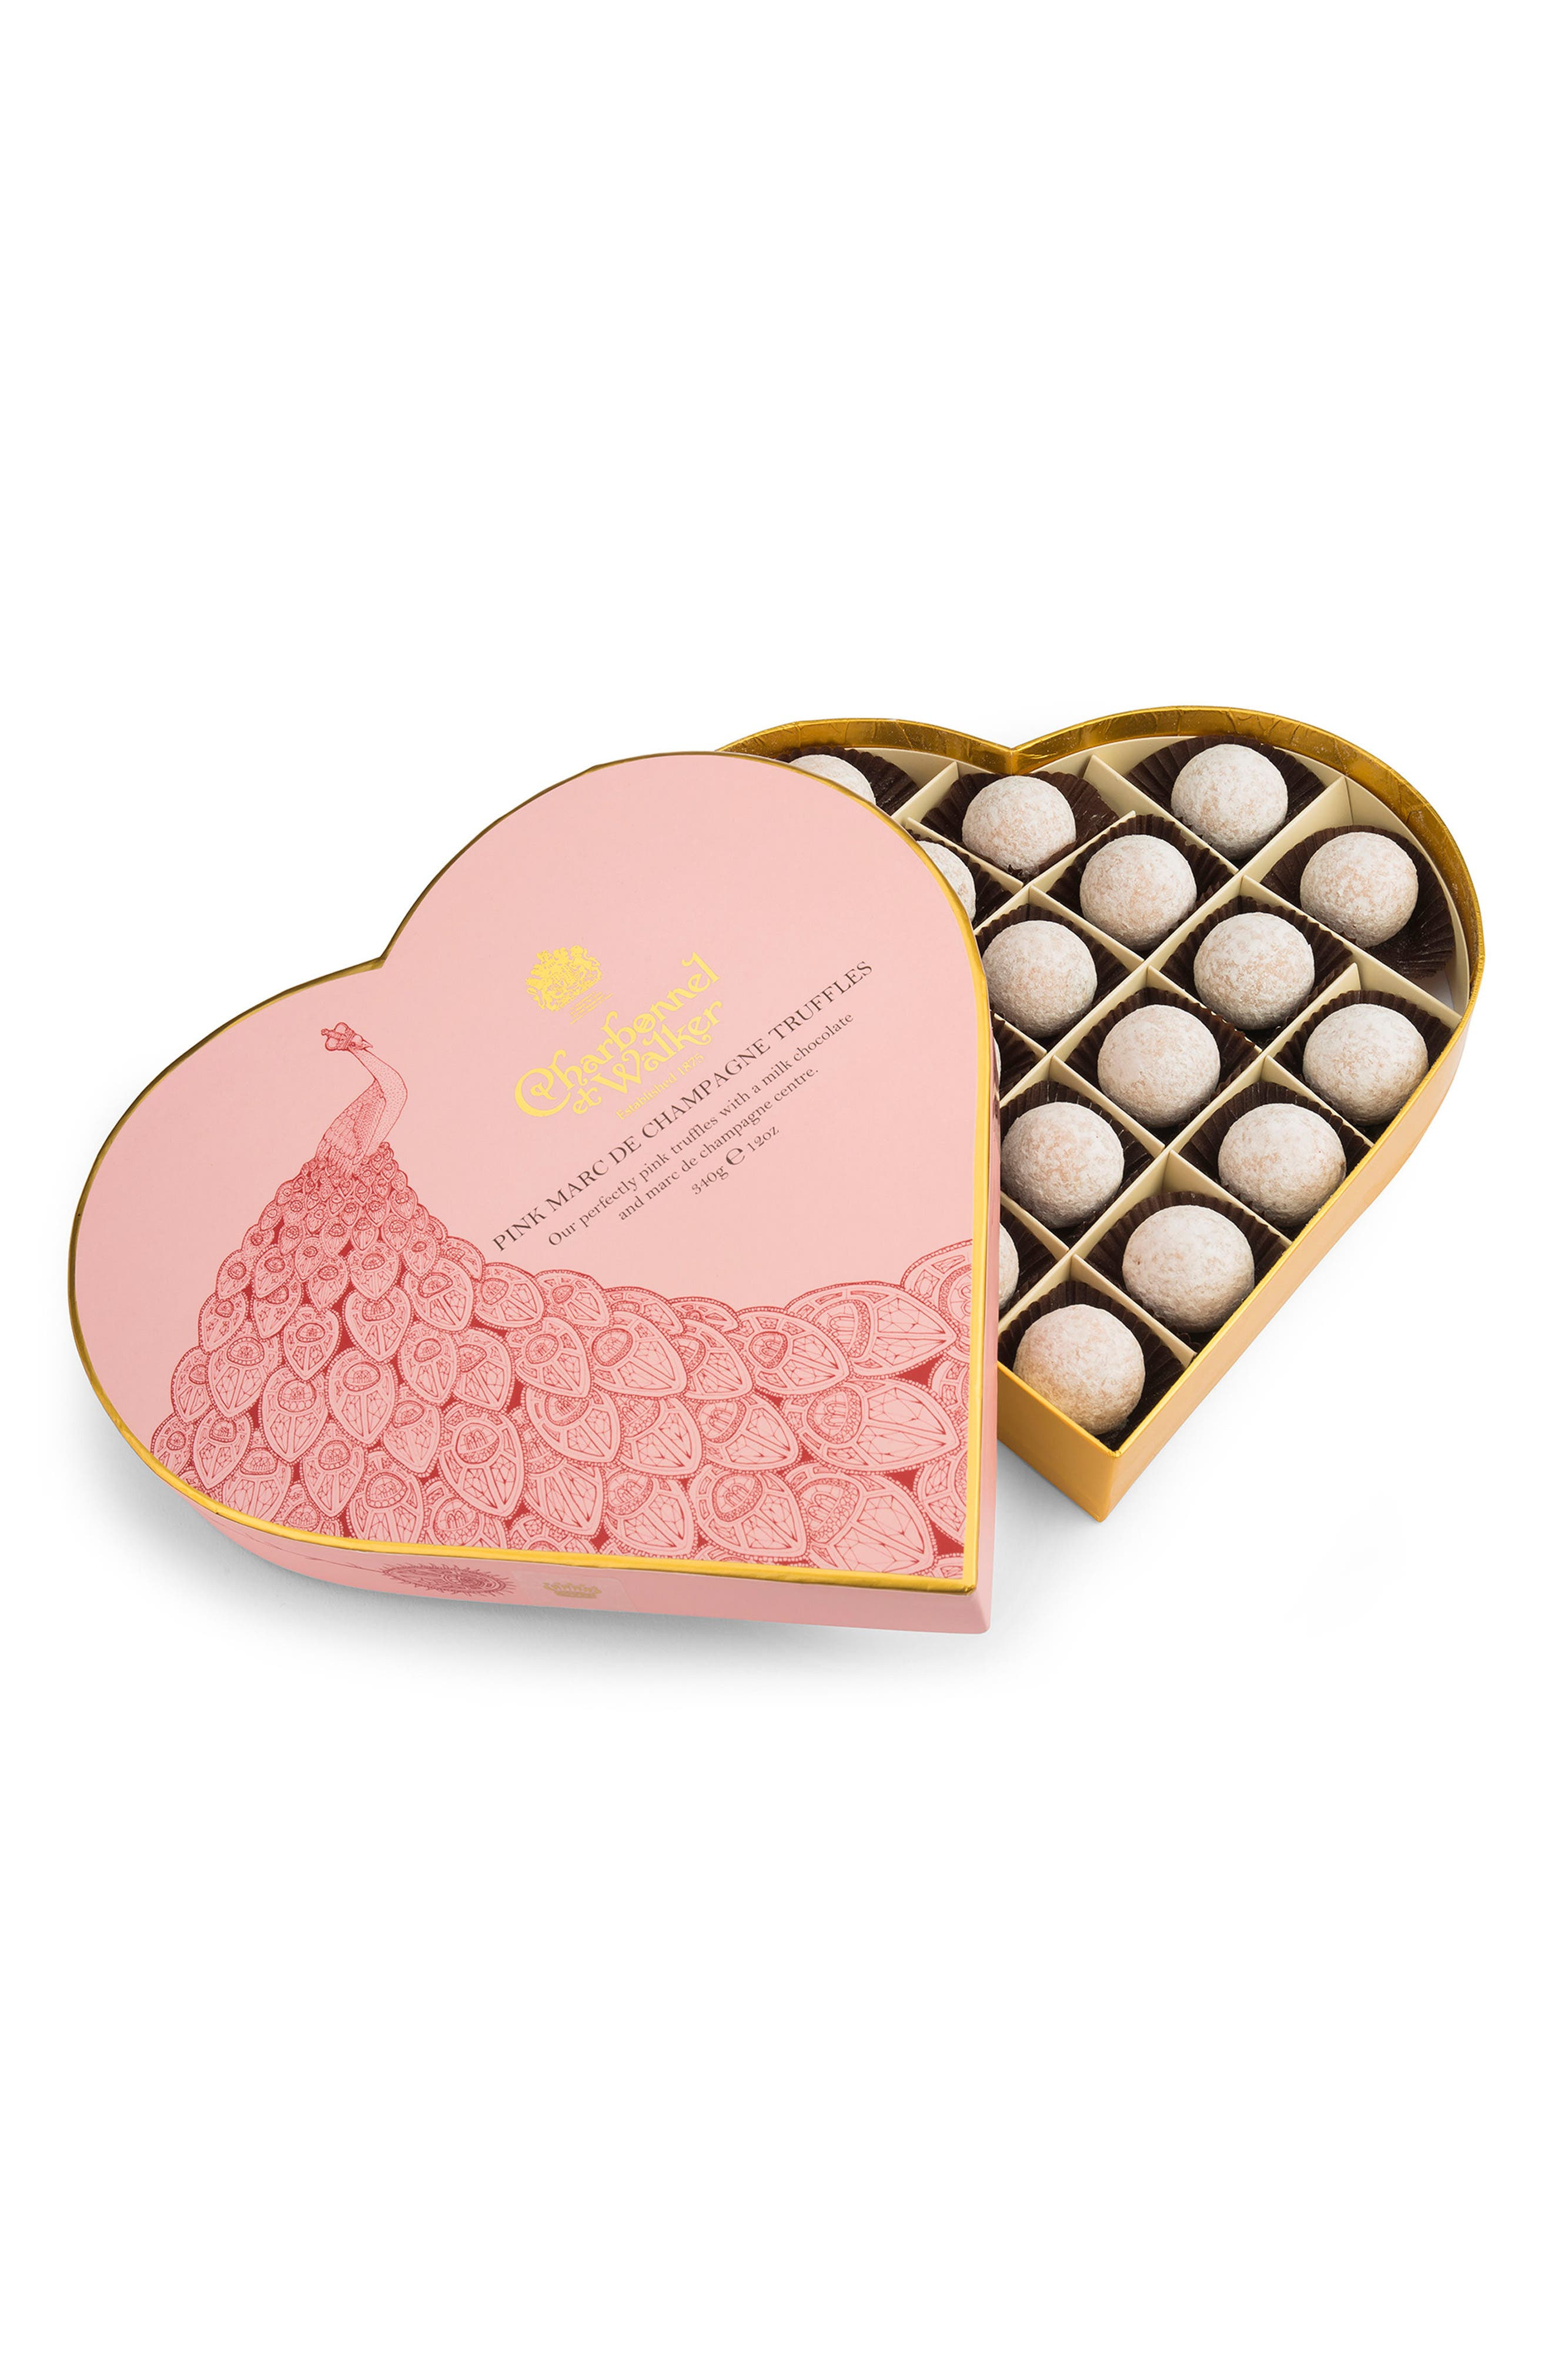 Marc de Champagne Chocolates in Heart Shaped Gift Box,                         Main,                         color, Pink Champagne